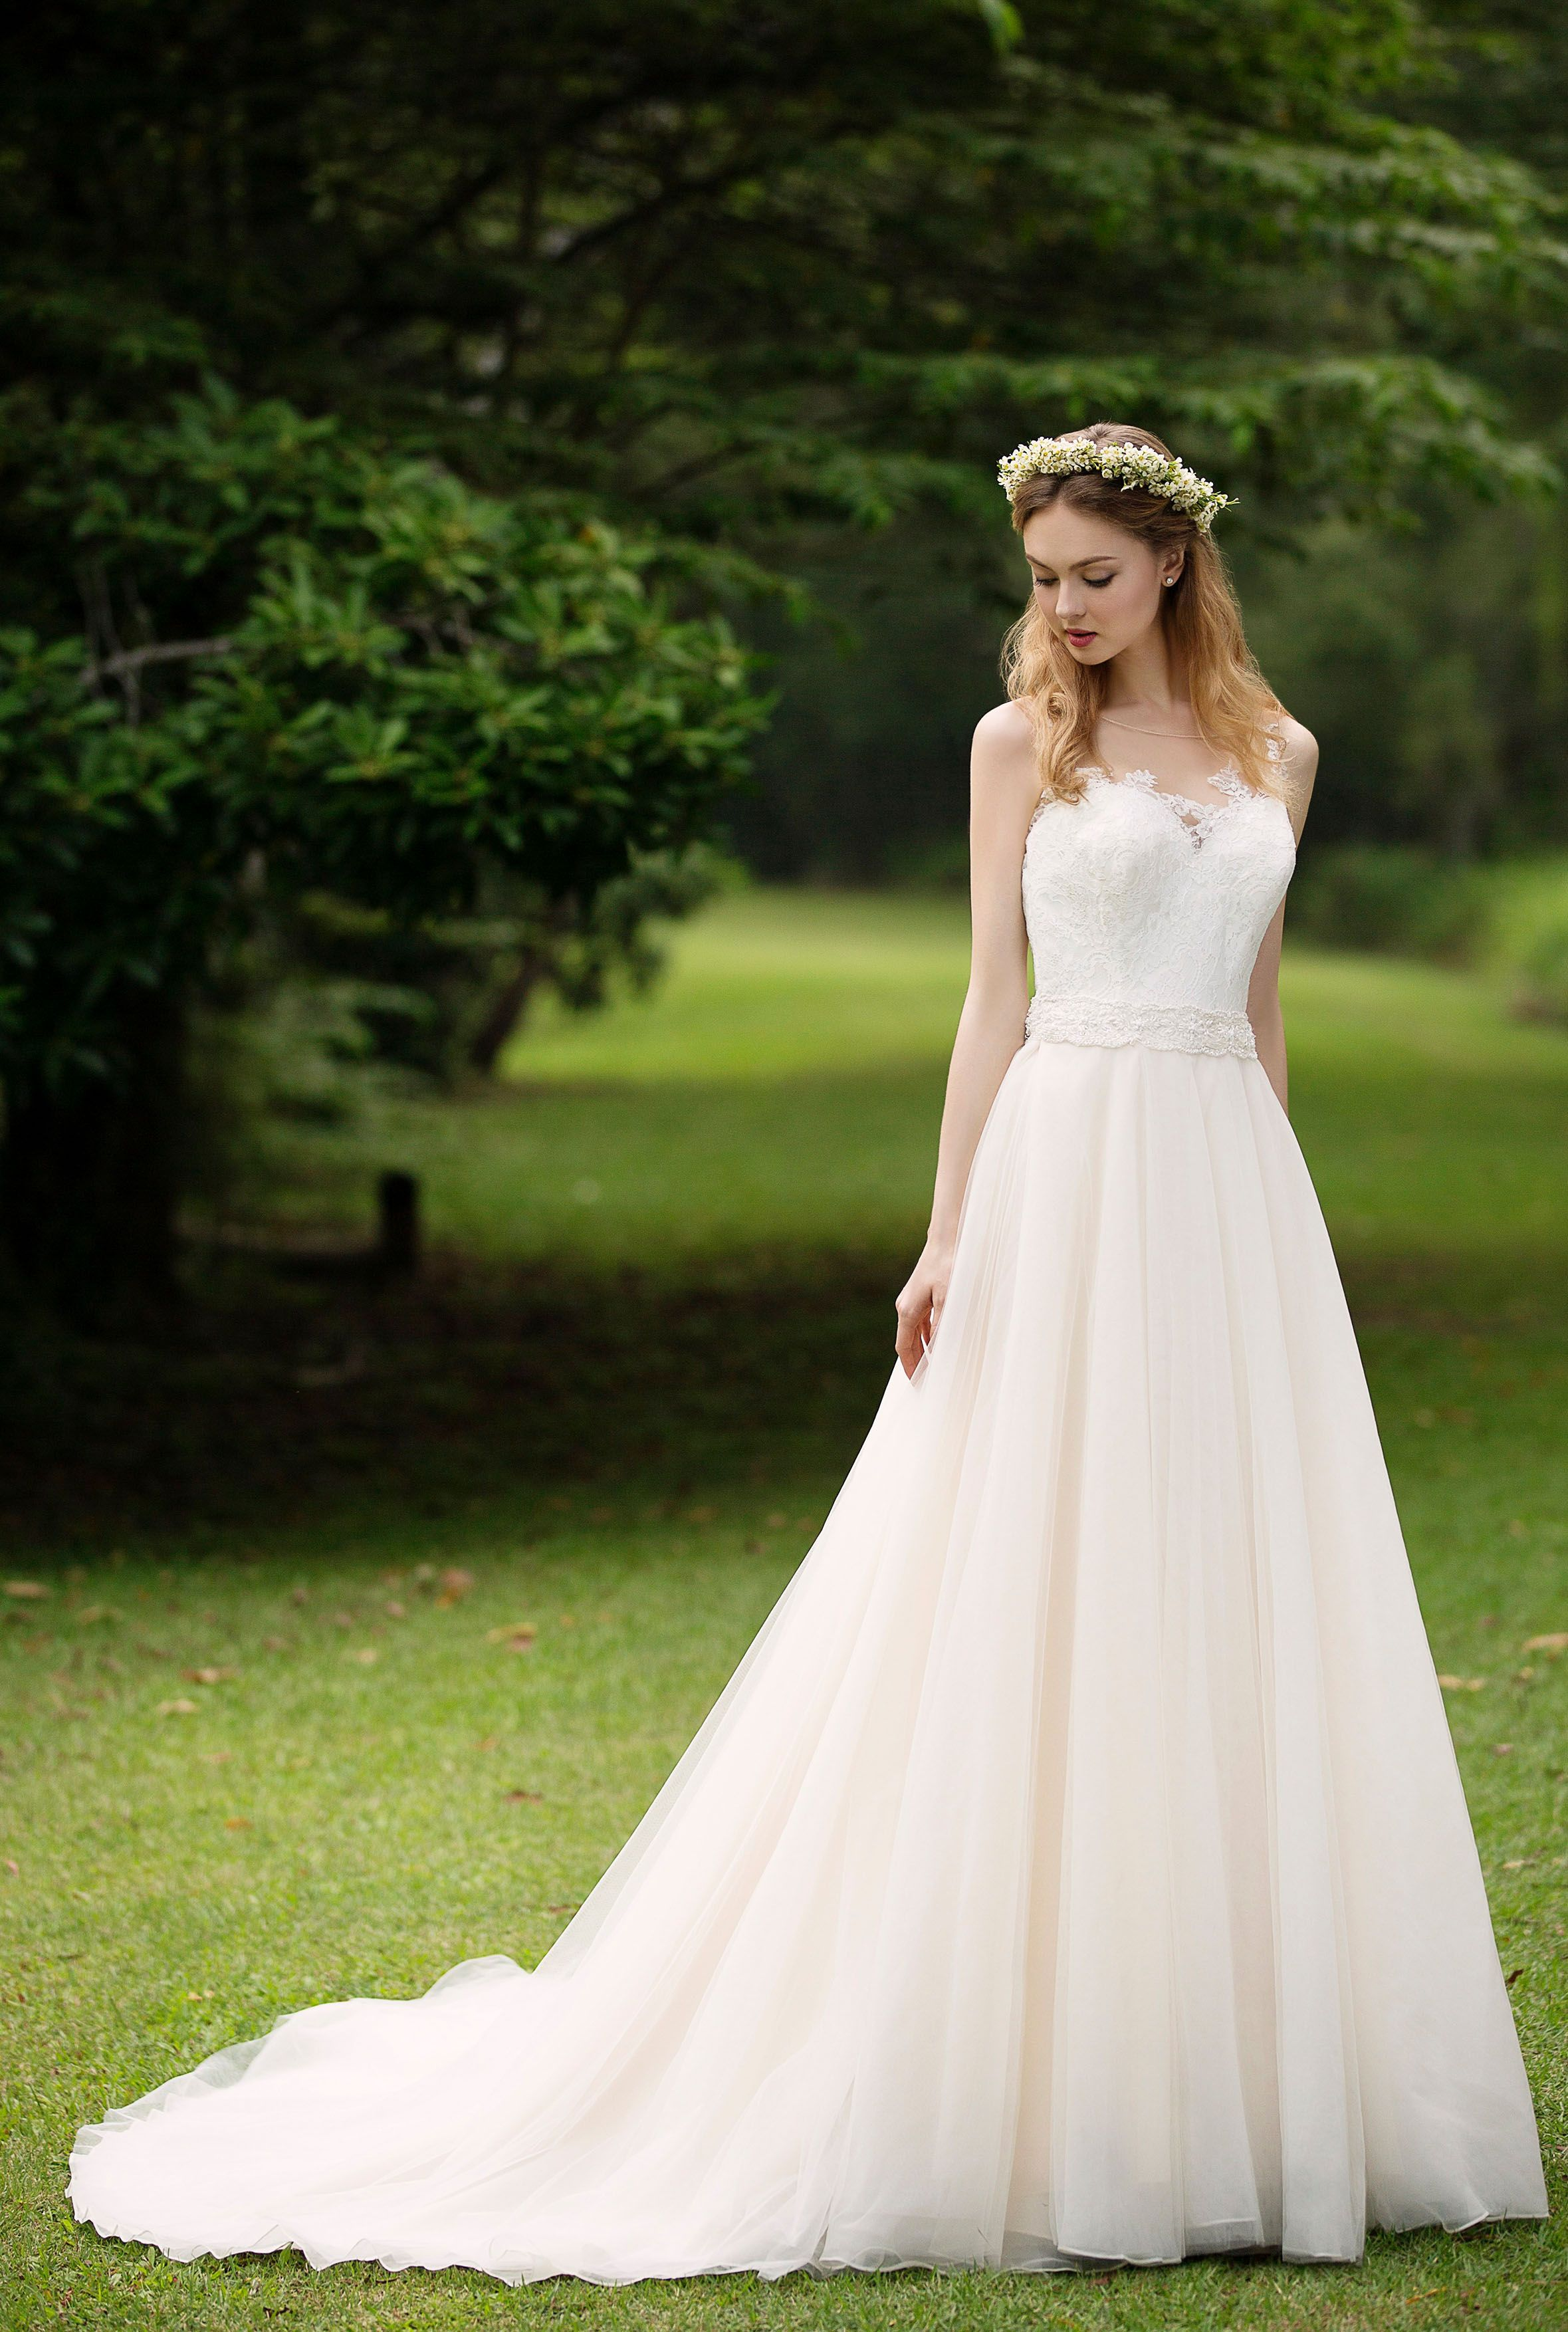 wedding gown rental Champagne tulle skirt paired with a gorgeous illusion back the ideal classic dress with a Wedding Gown RentalWedding